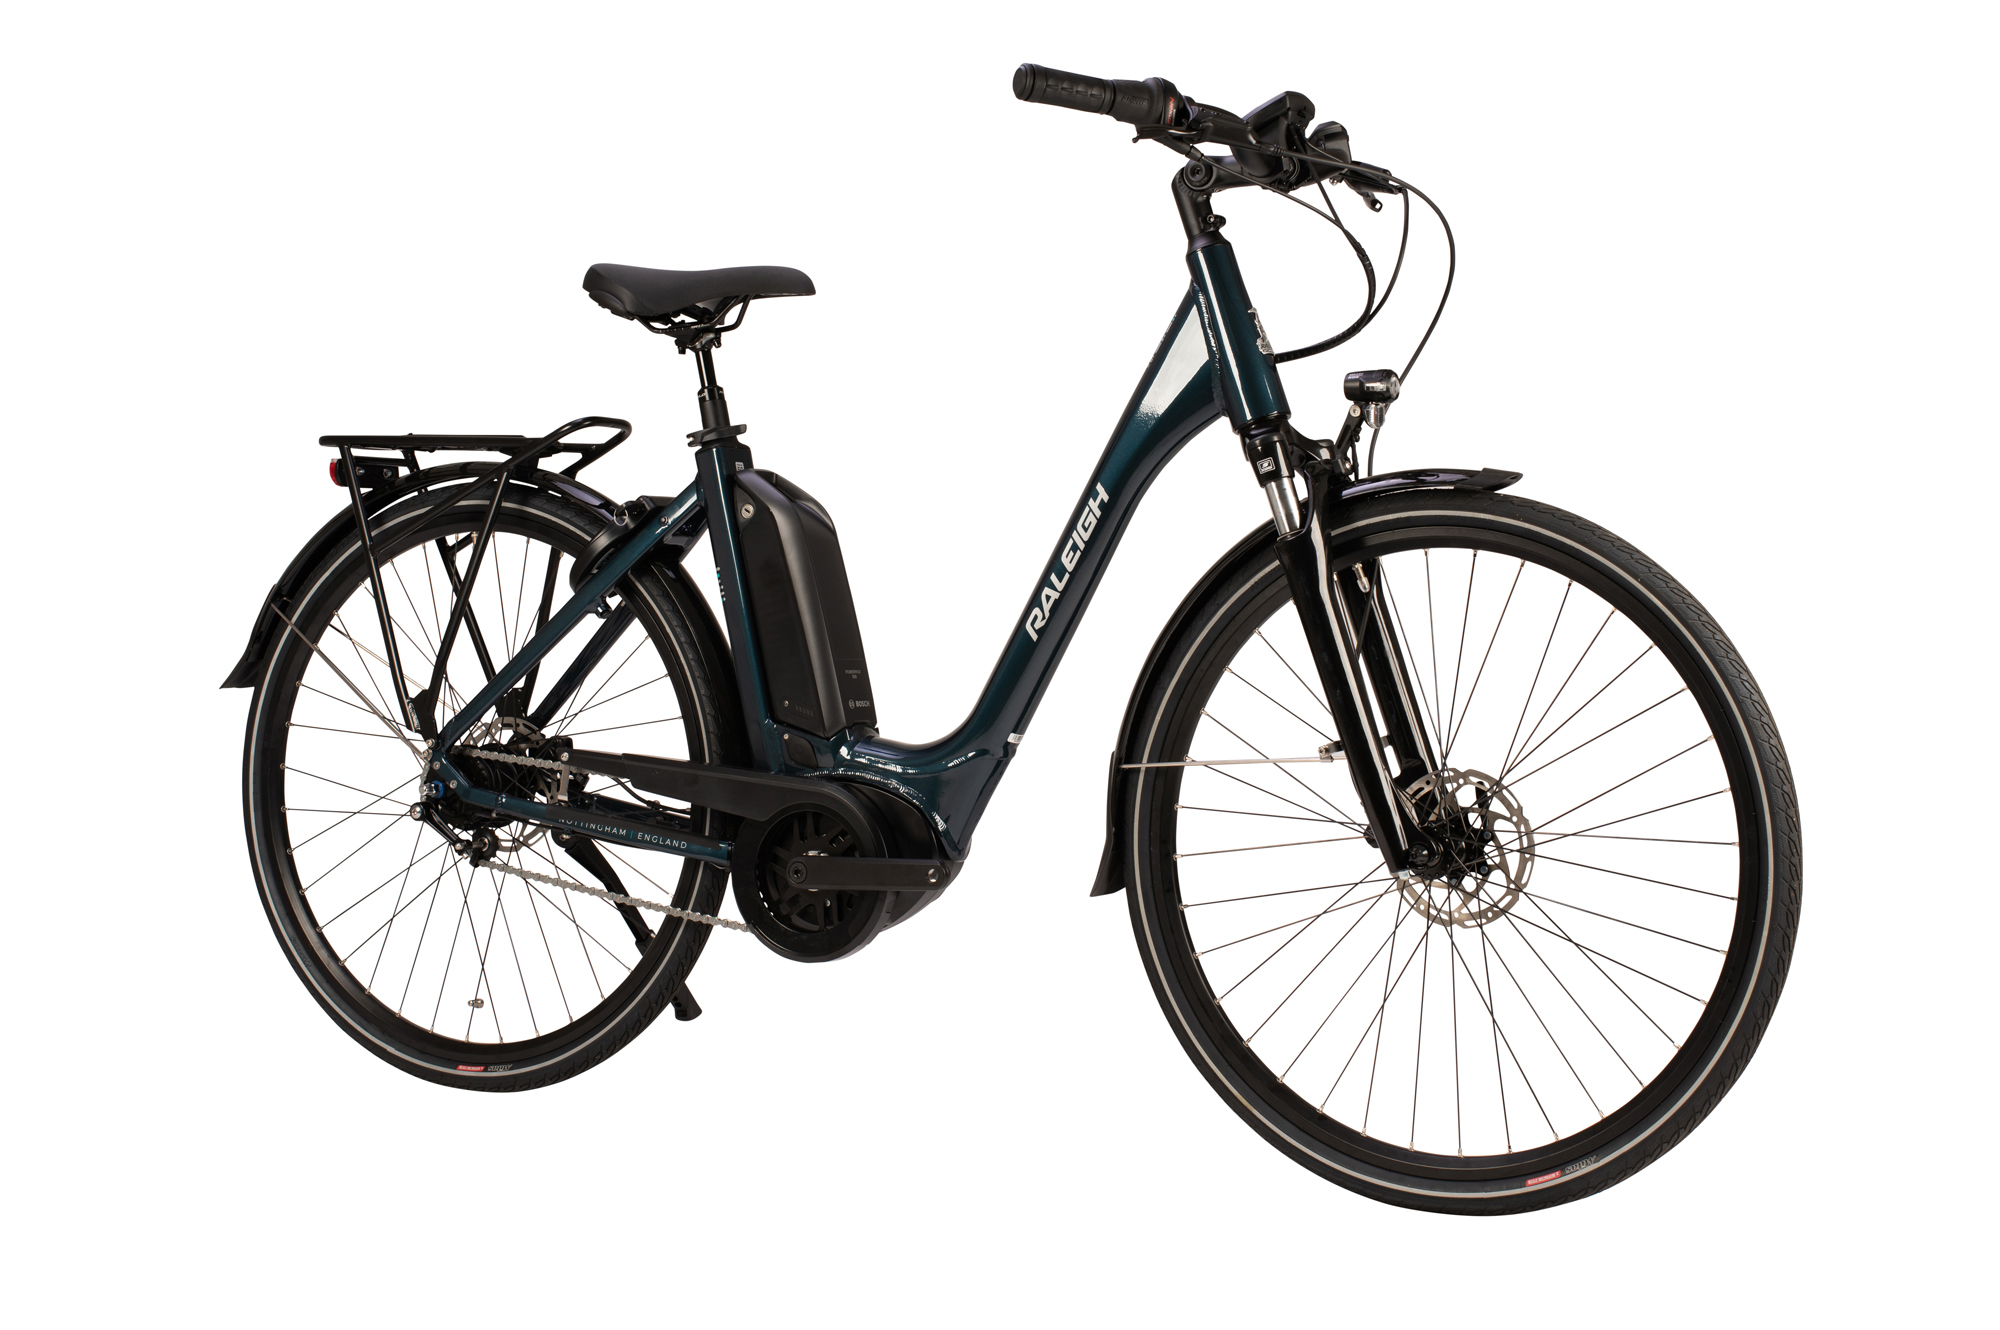 Front view of the Raleigh Motus Grand Tour electric bike